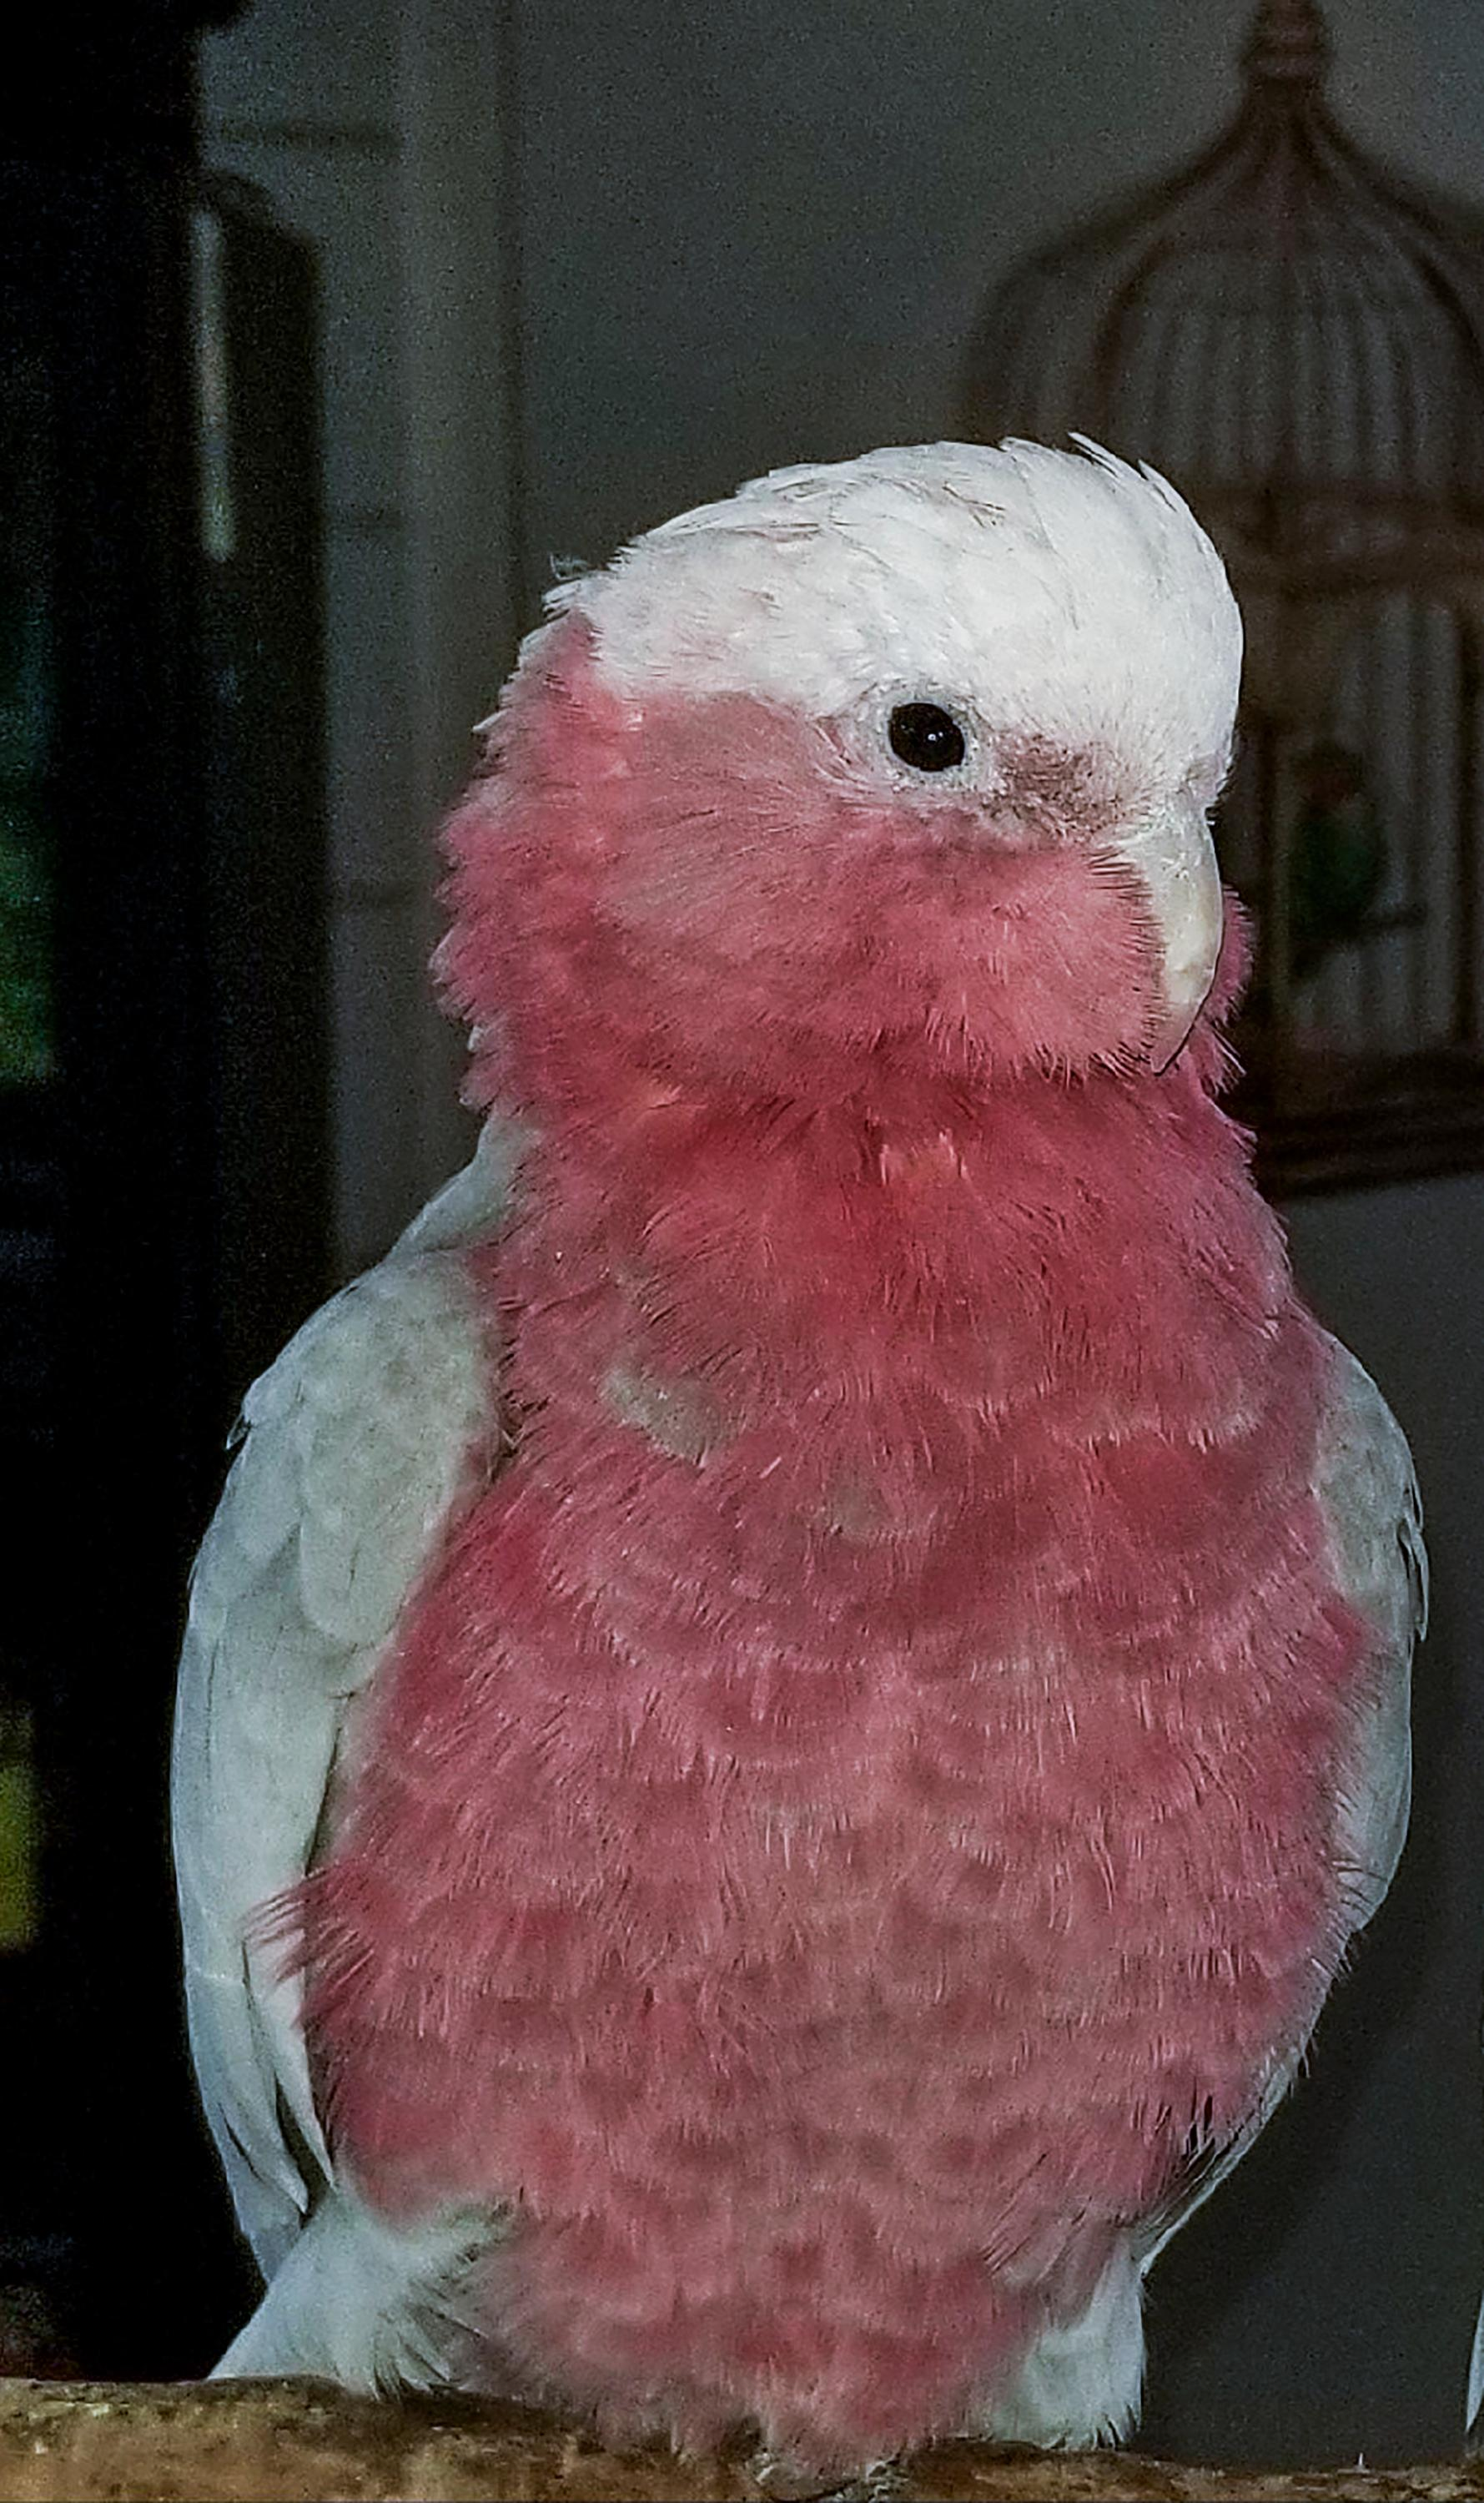 This undated photo provided by Birds-N-Paradise pet store shows a Galah cockatoo, also known as the rose-breasted cockatoo, one of the birds stolen from the Birds-N-Paradise pet store in Menifee, Calif., early Friday, March 16, 2018. Store owners said the bird is worth $2,200. (Lori Lister/Birds-N-Paradise via AP)